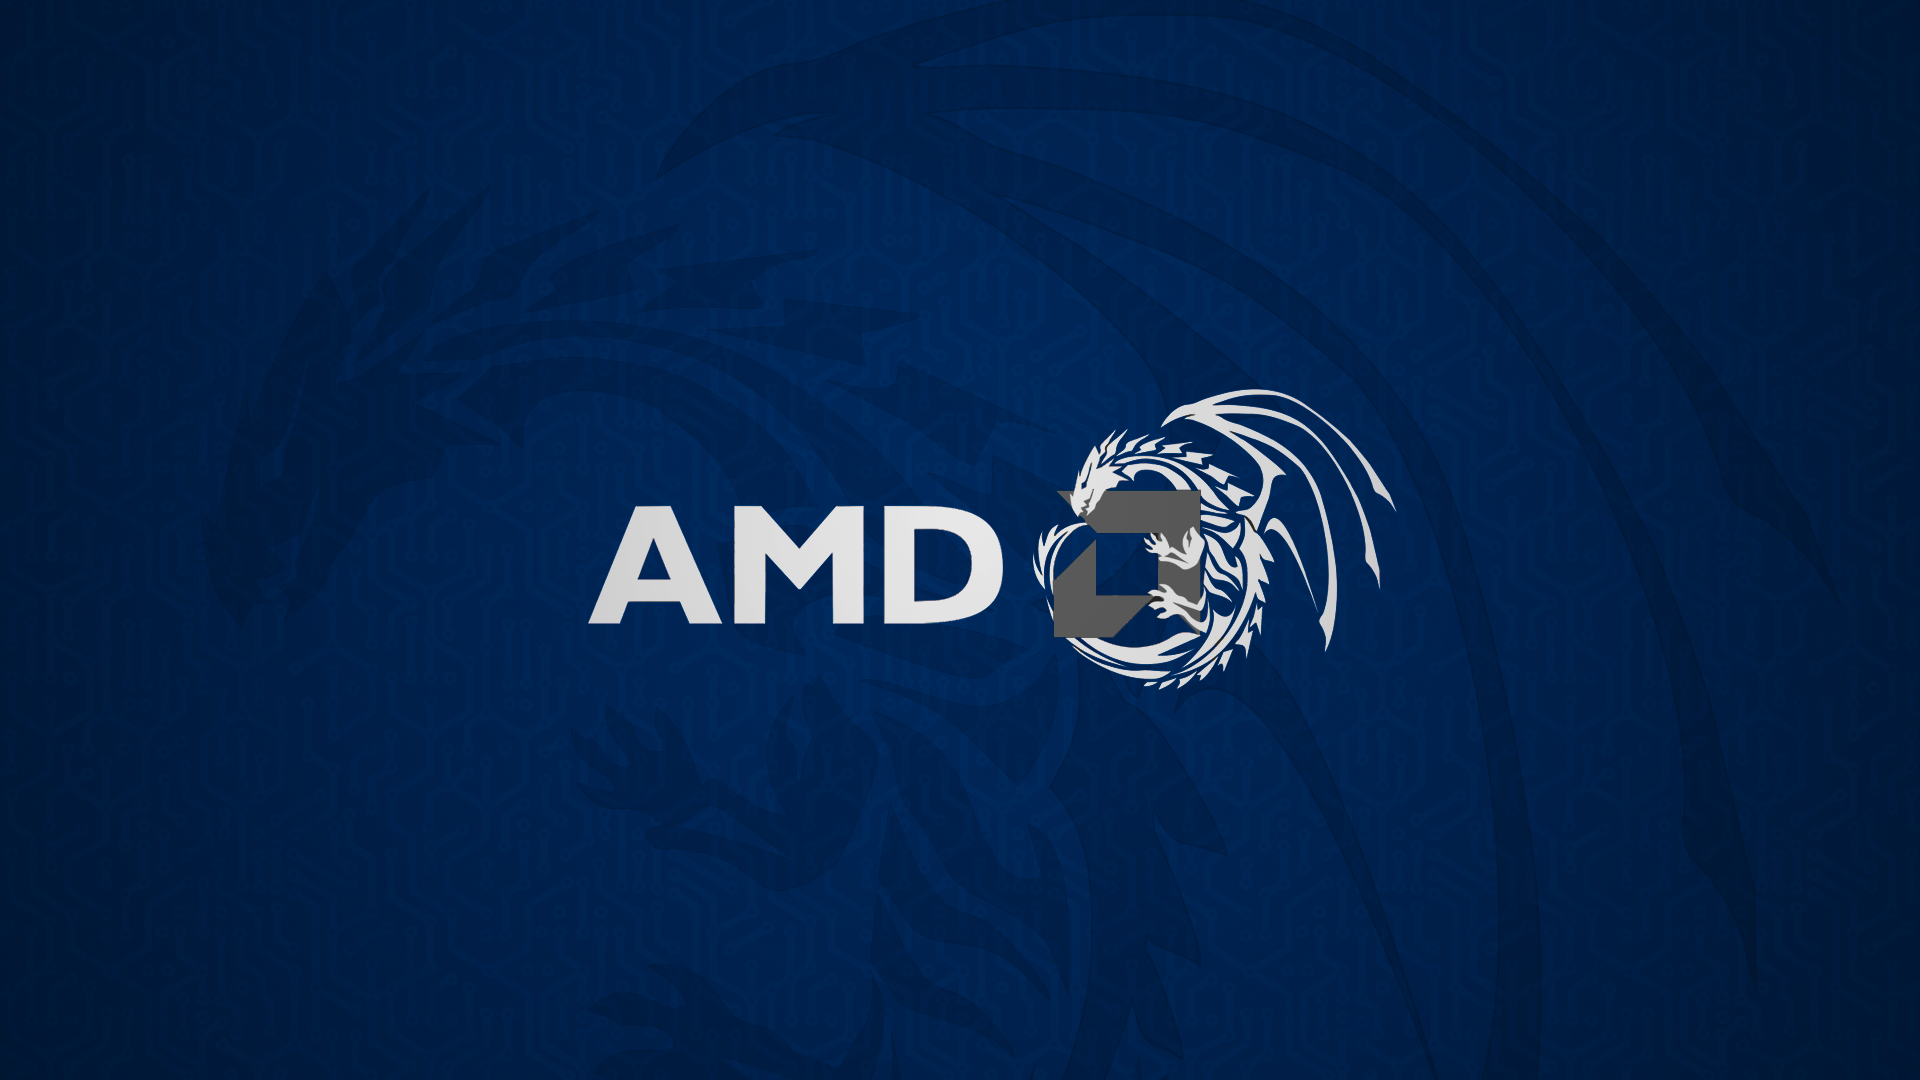 Msi Blue Wallpapers Top Free Msi Blue Backgrounds Wallpaperaccess